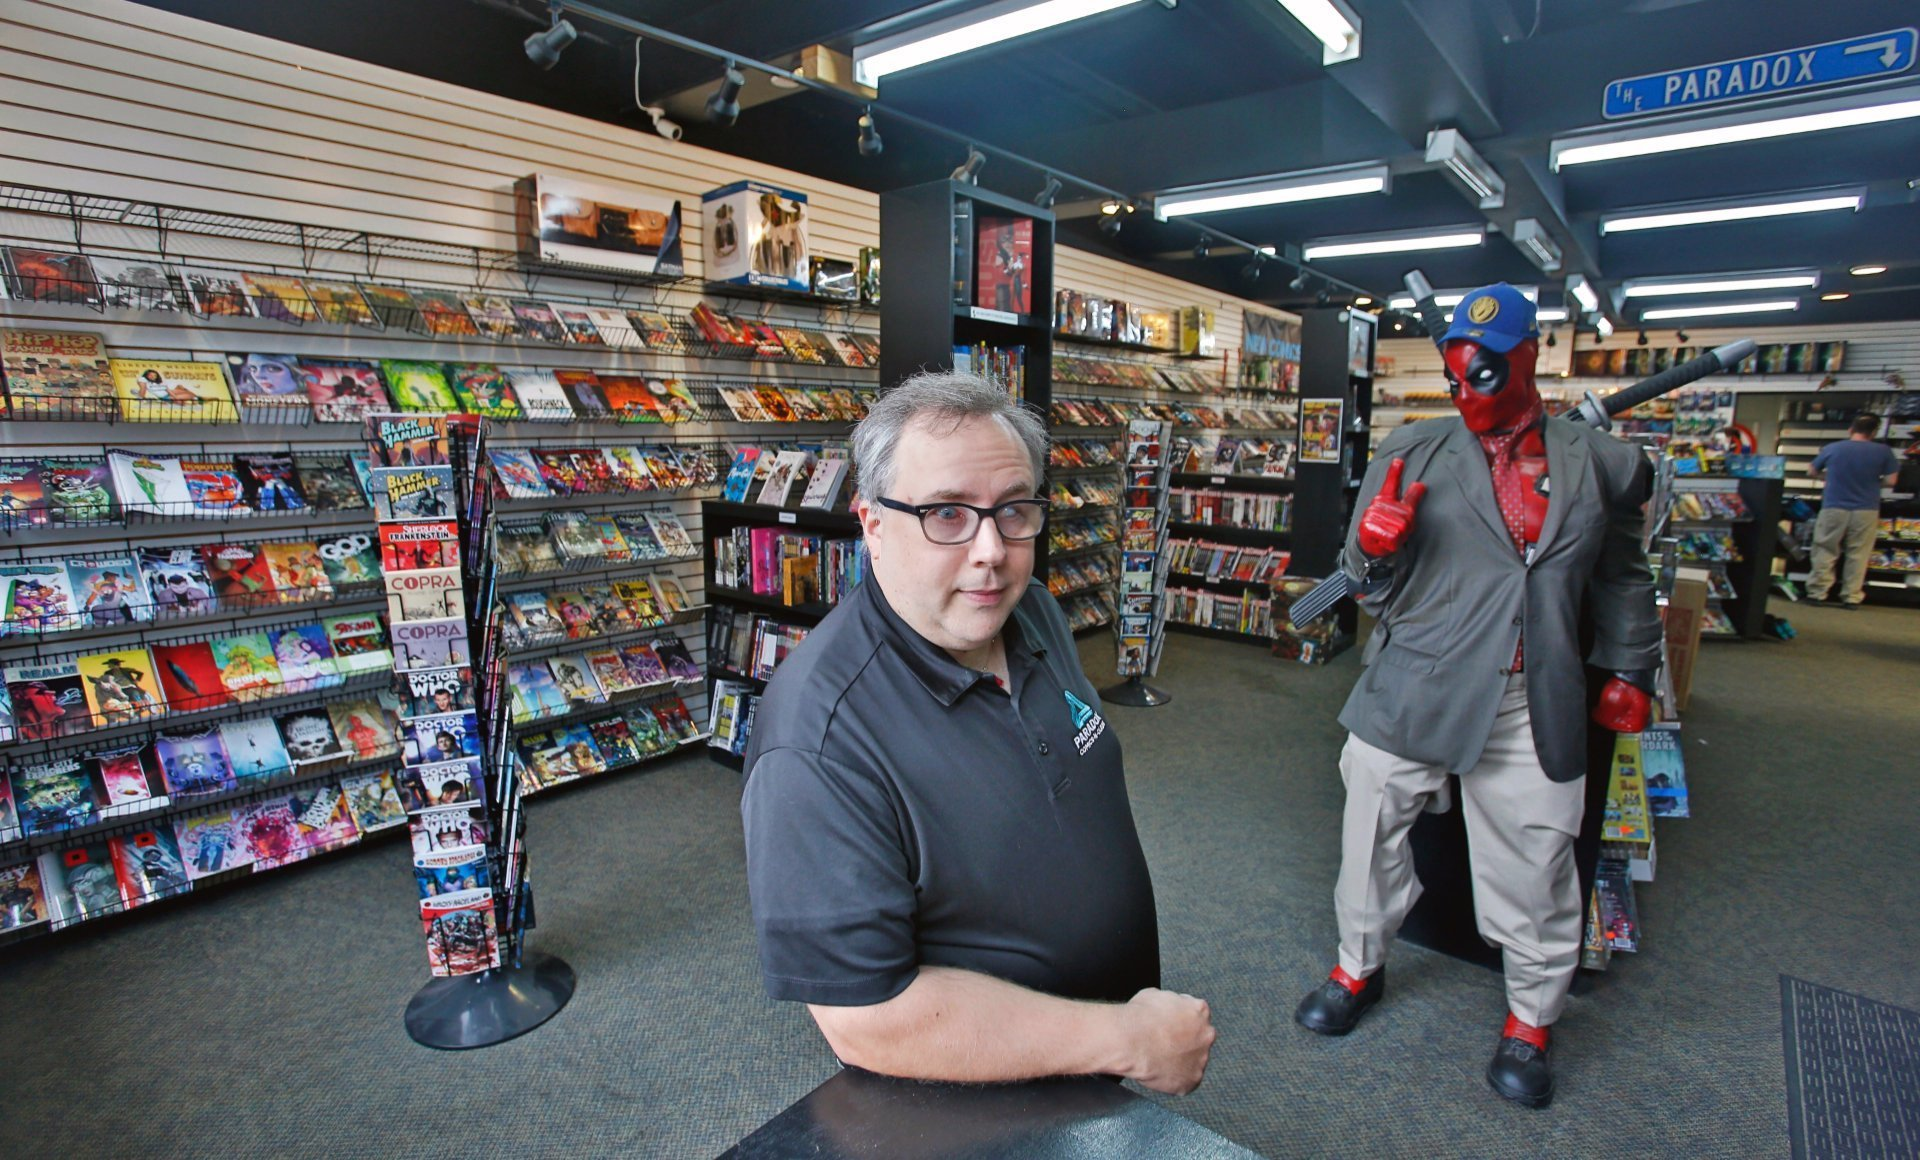 Richard Early owns Paradox Comics-N-Cards, located at 26 Roberts St. N. in downtown Fargo. David Samson / The Forum